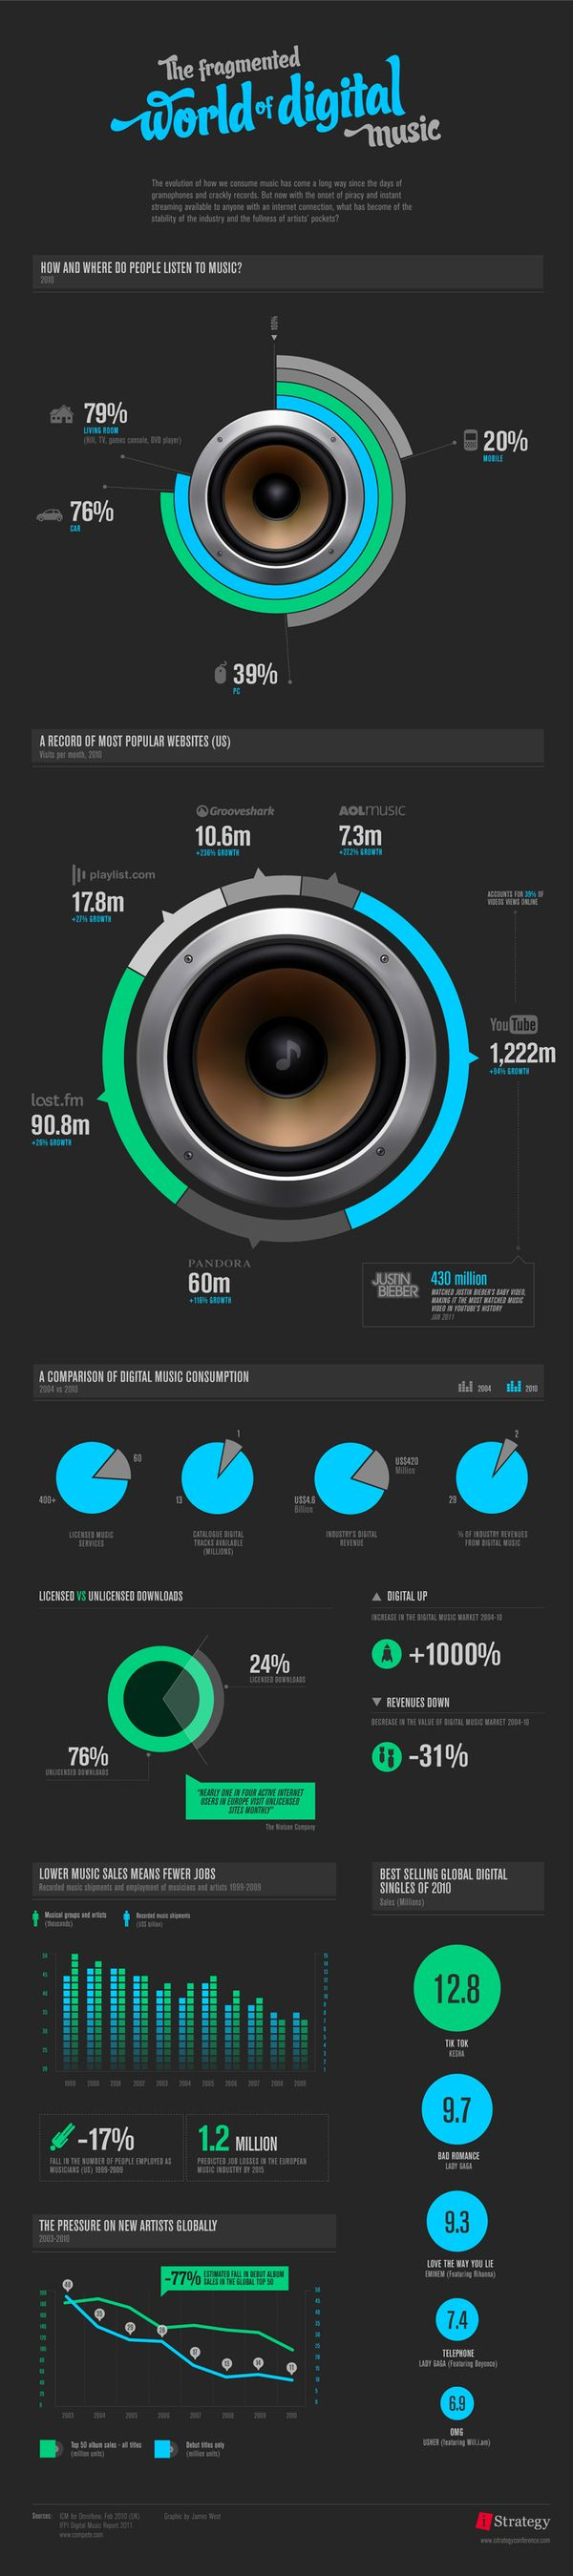 Digital Music Stats - Infographic